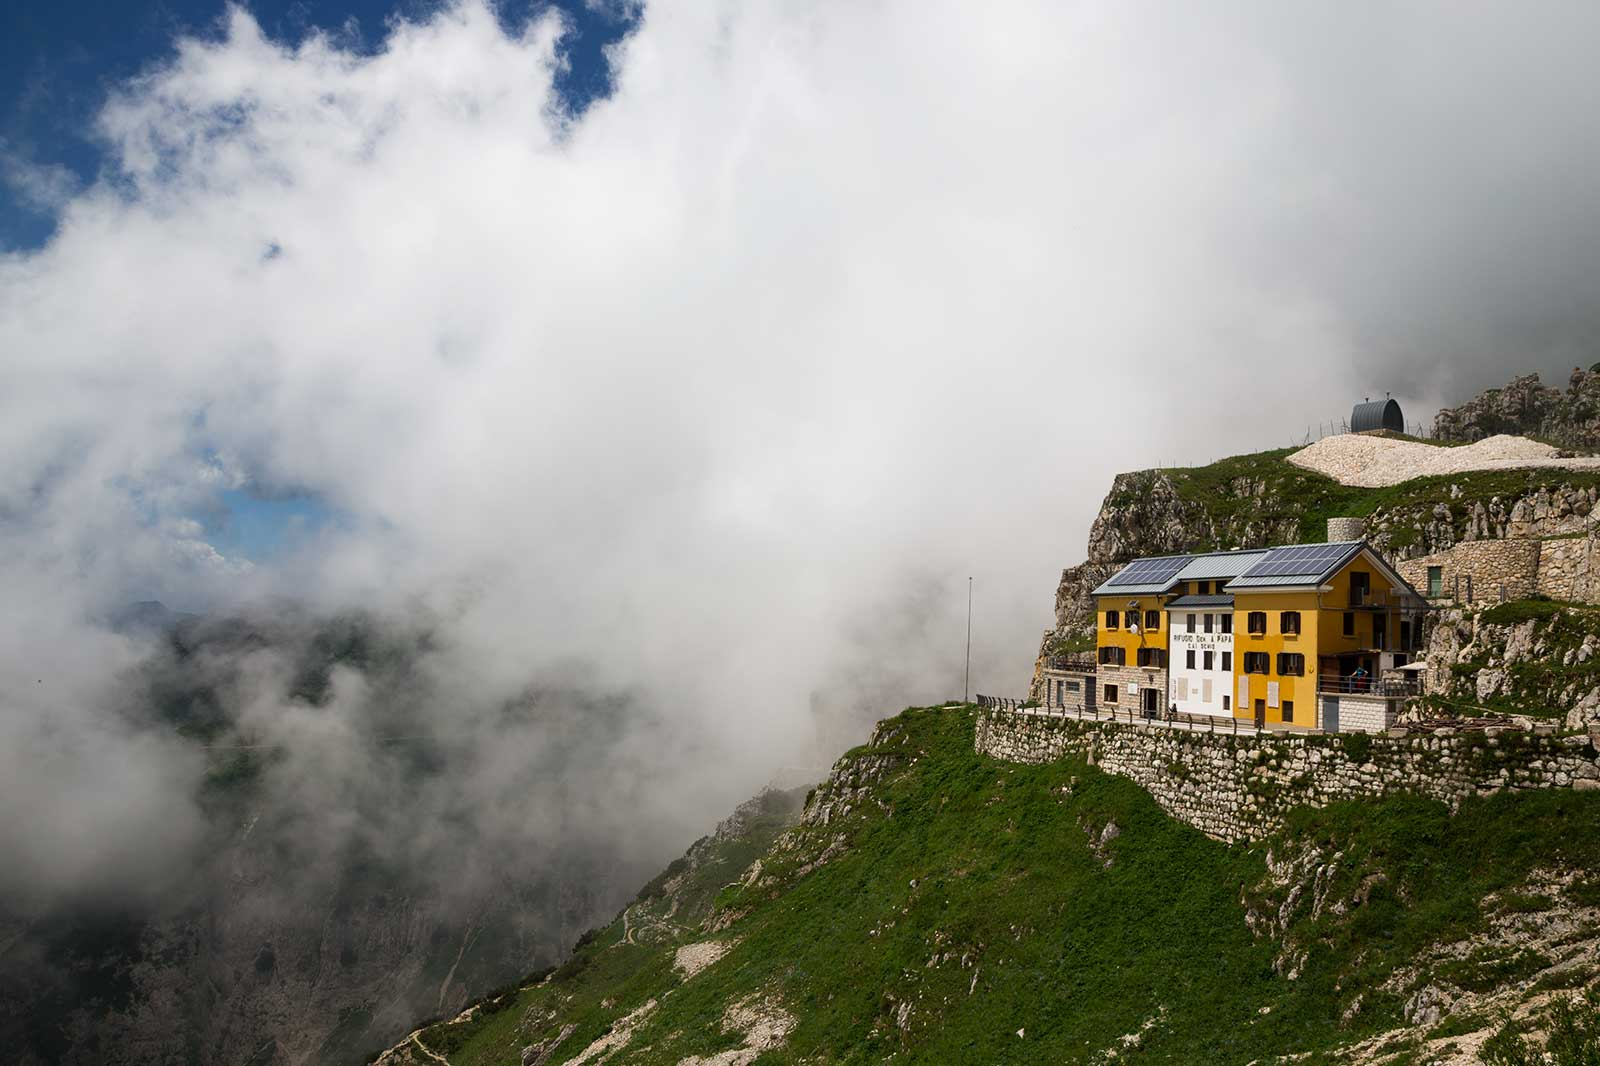 Rifugio Achille Papa is located right at the end of Strada delle 52 Gallerie and a perfect spot for a nice lunch.